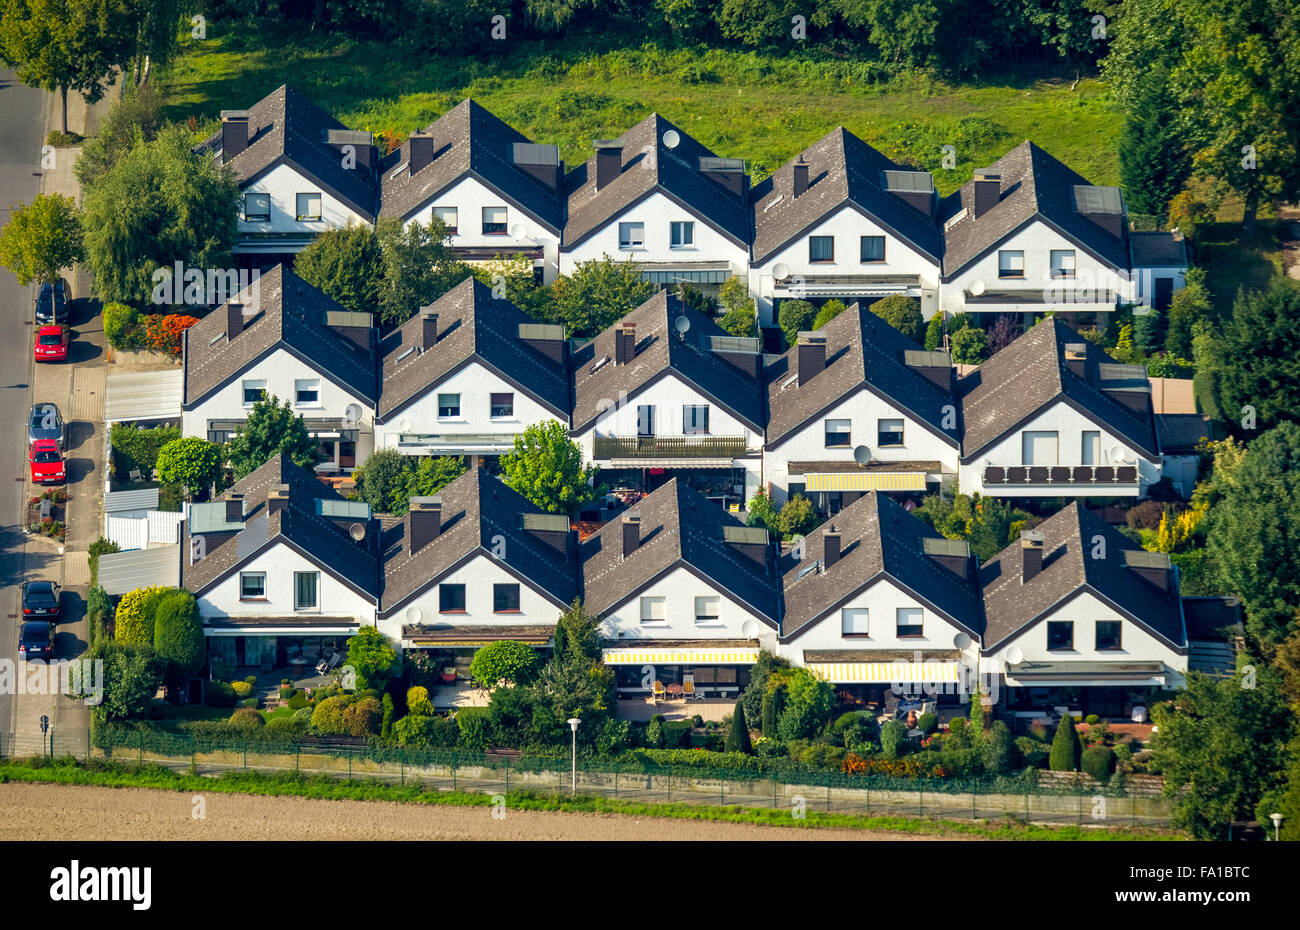 Row houses, home ownership, family houses, residential area, beautiful living on the southern Schützenstraße, - Stock Image